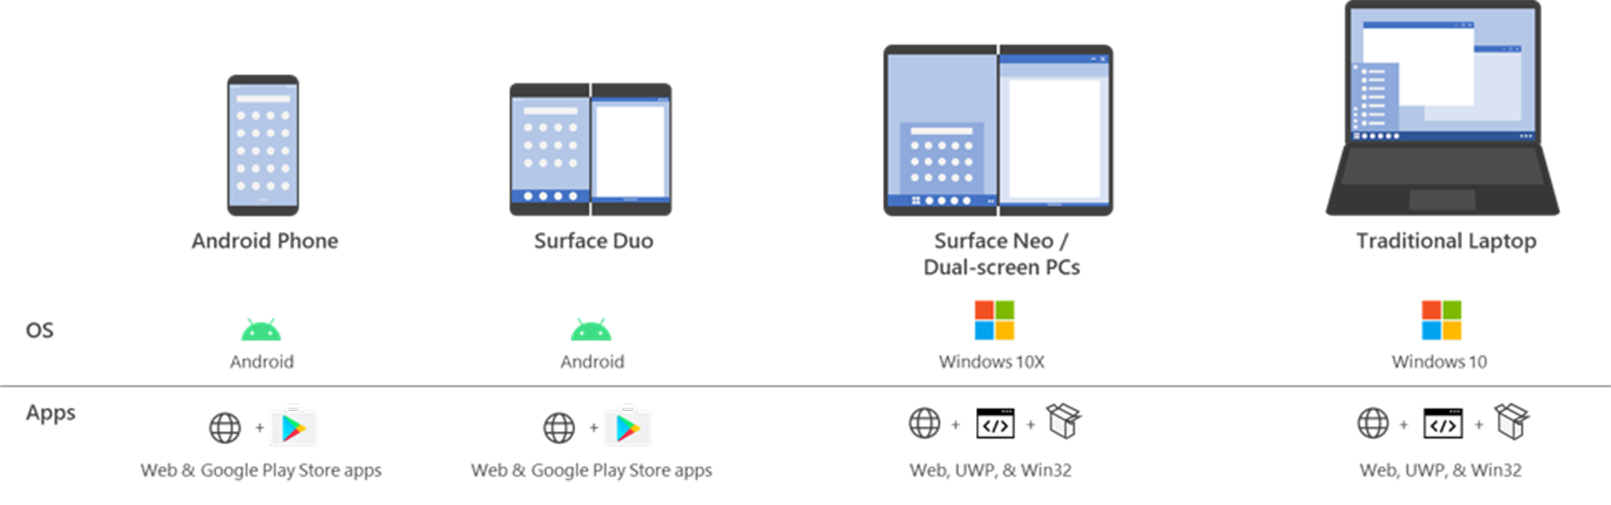 Microsoft Surface app compatibility